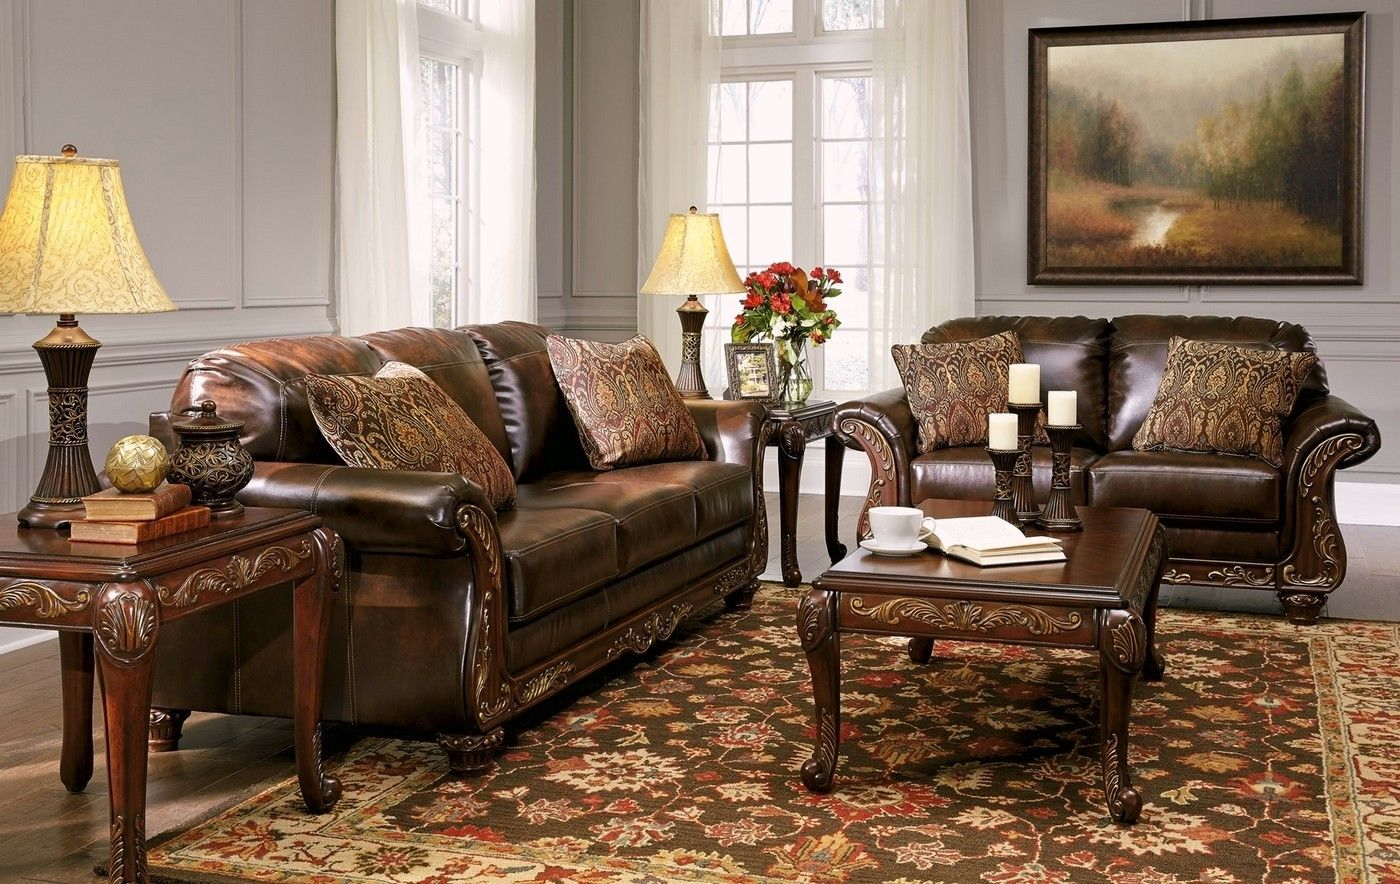 vanceton brown leather traditional wood sofa loveseat living room set. Black Bedroom Furniture Sets. Home Design Ideas